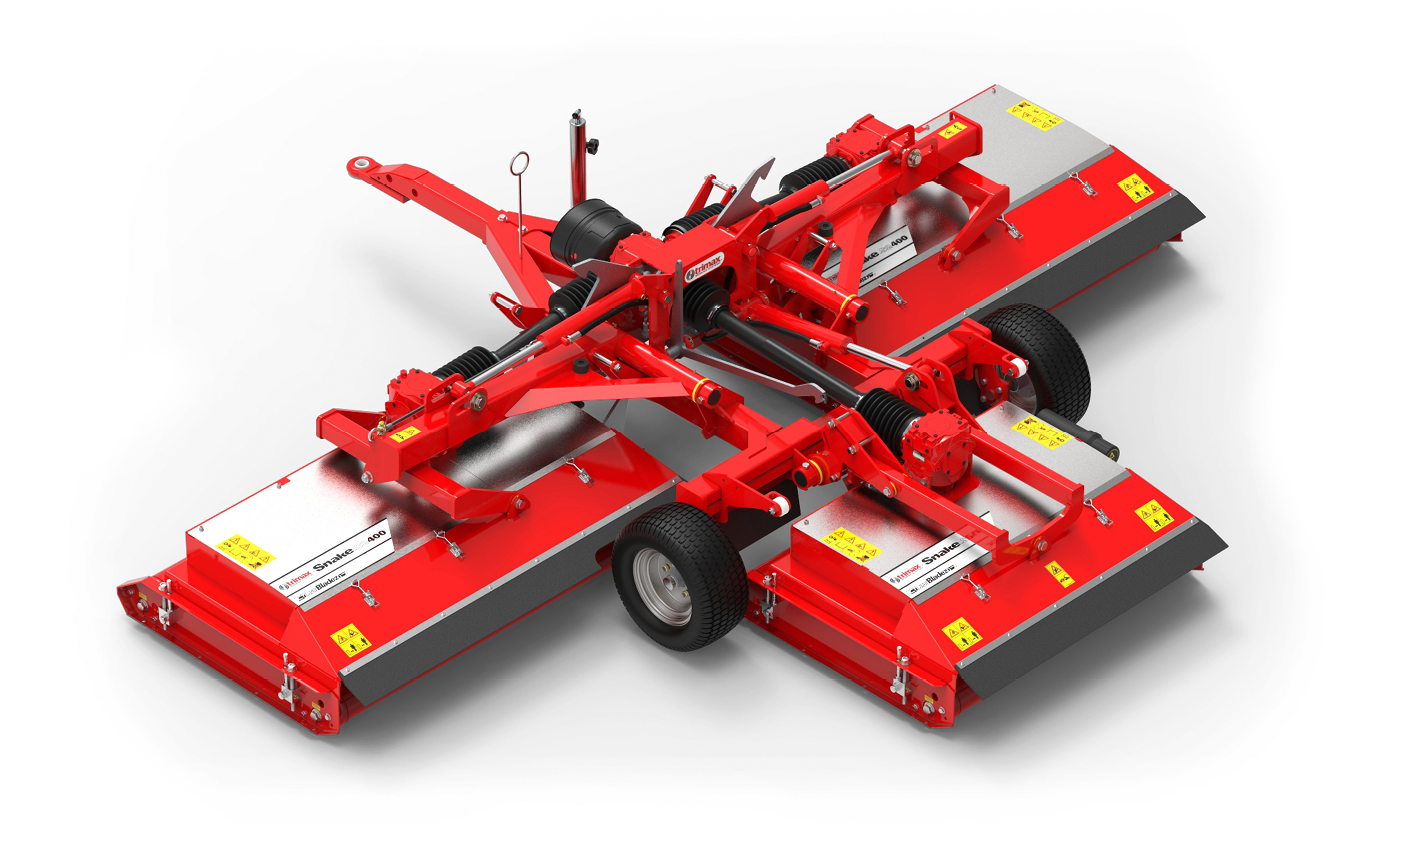 Snake S2 Lawn Mower Red